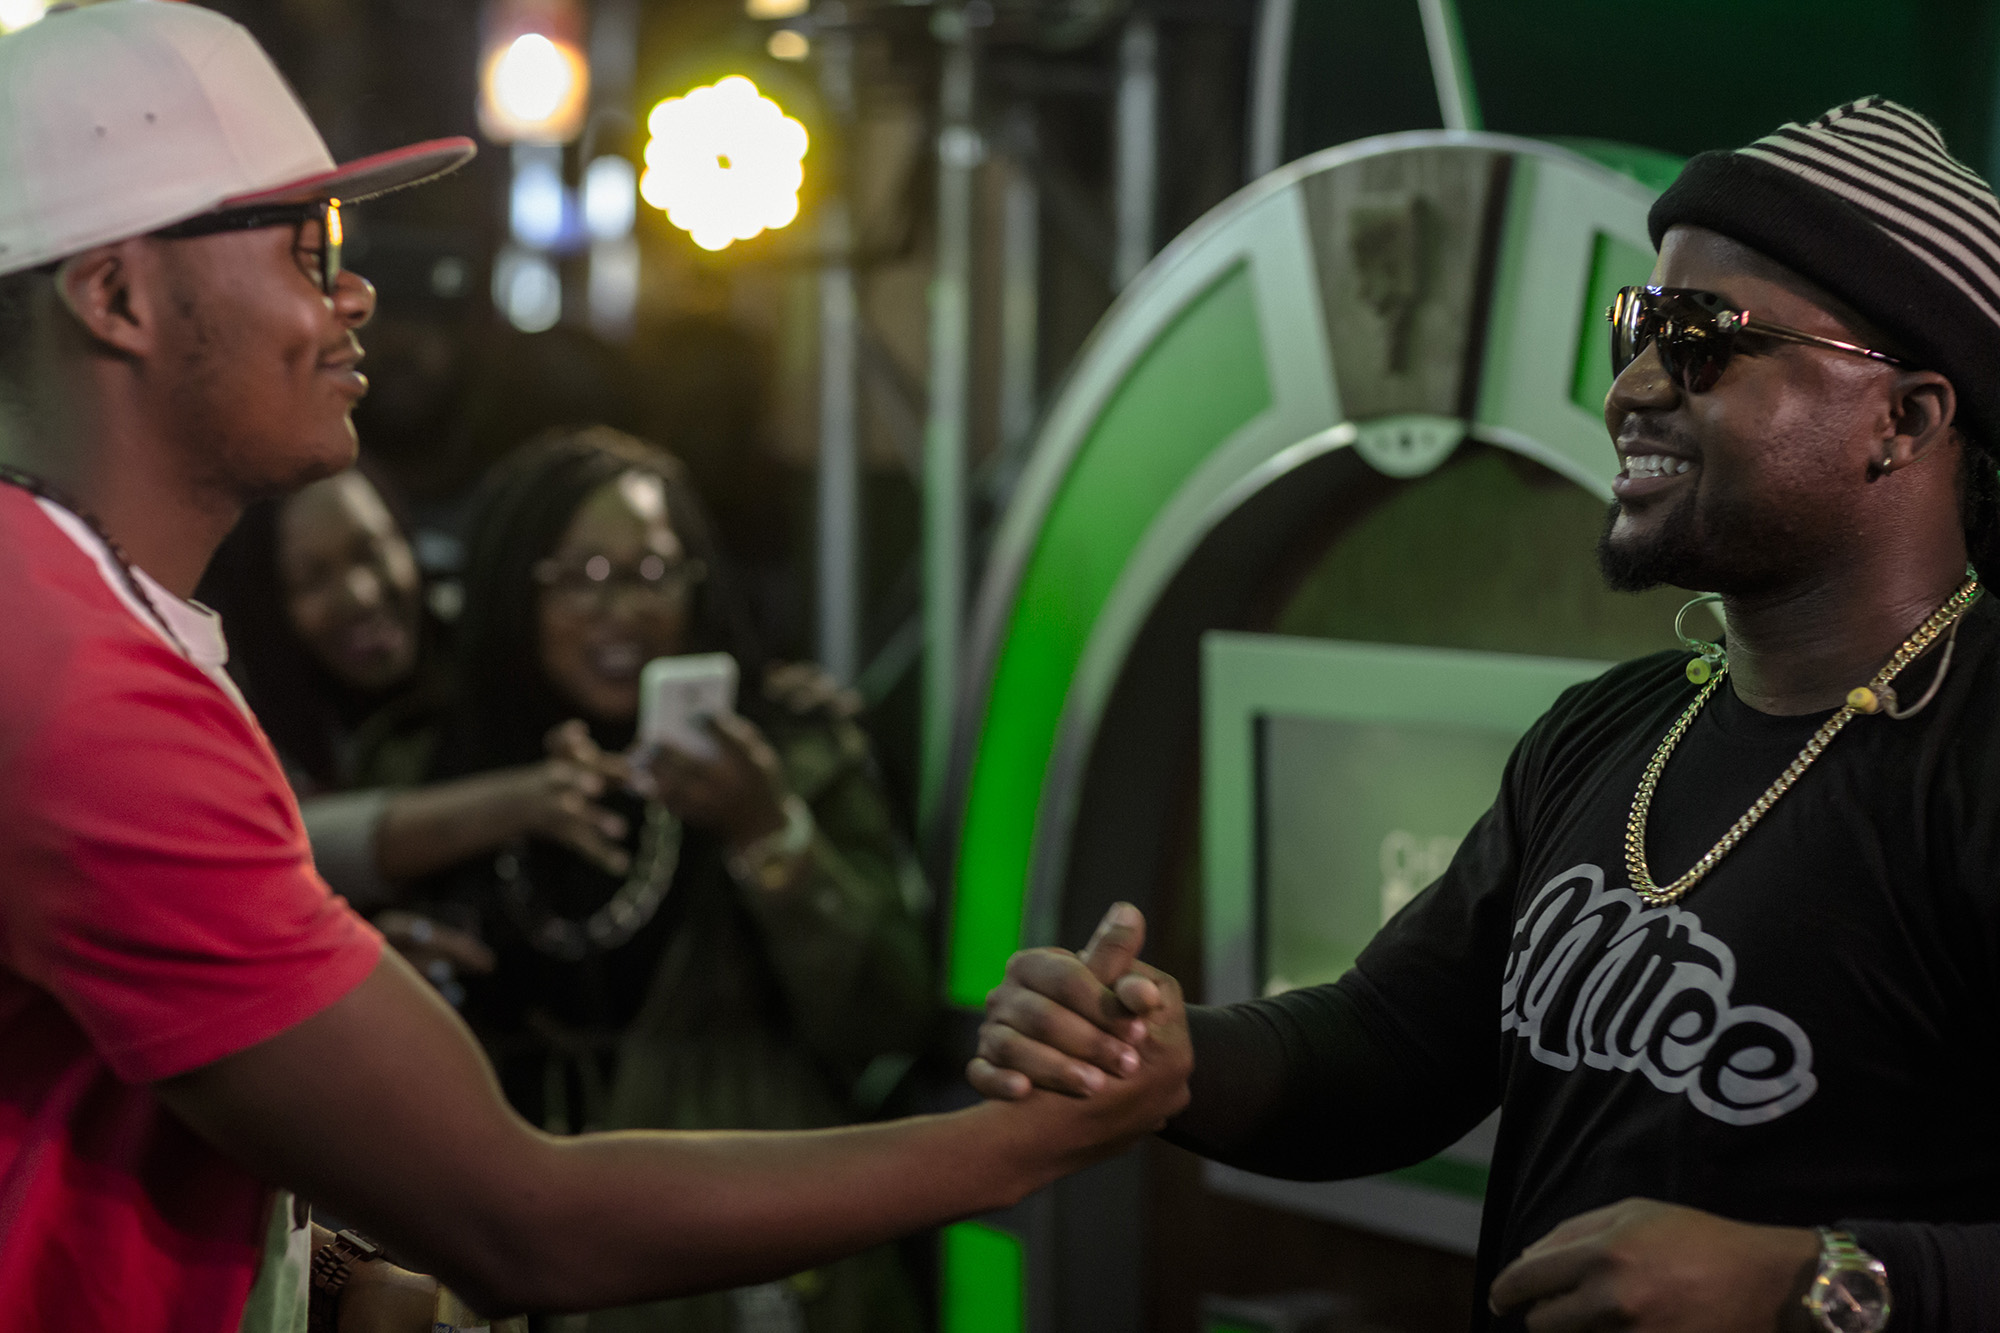 Watch Cassper Nyovest Surprise A Fan At The #AmstelAmplifeid Jukebox Experience CK0A9201